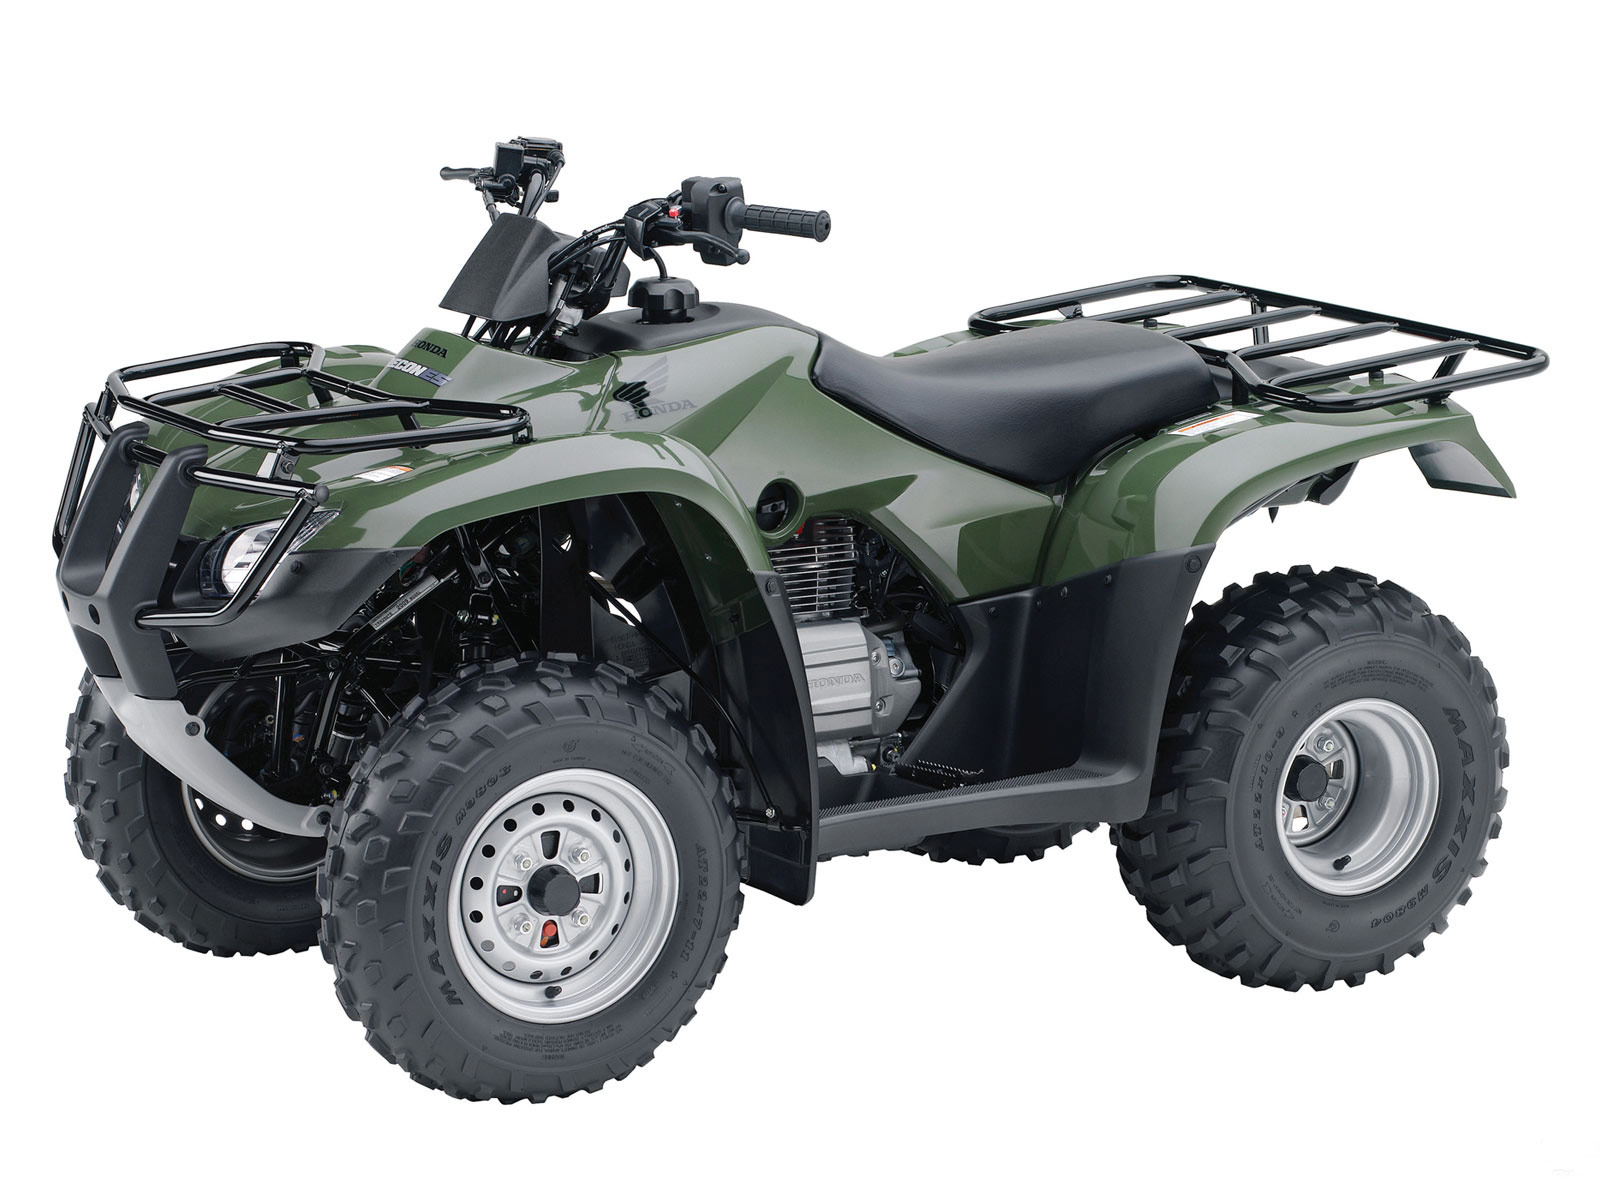 2009 HONDA Fourtrax Recon ES ATV Wallpapers 1600x1200